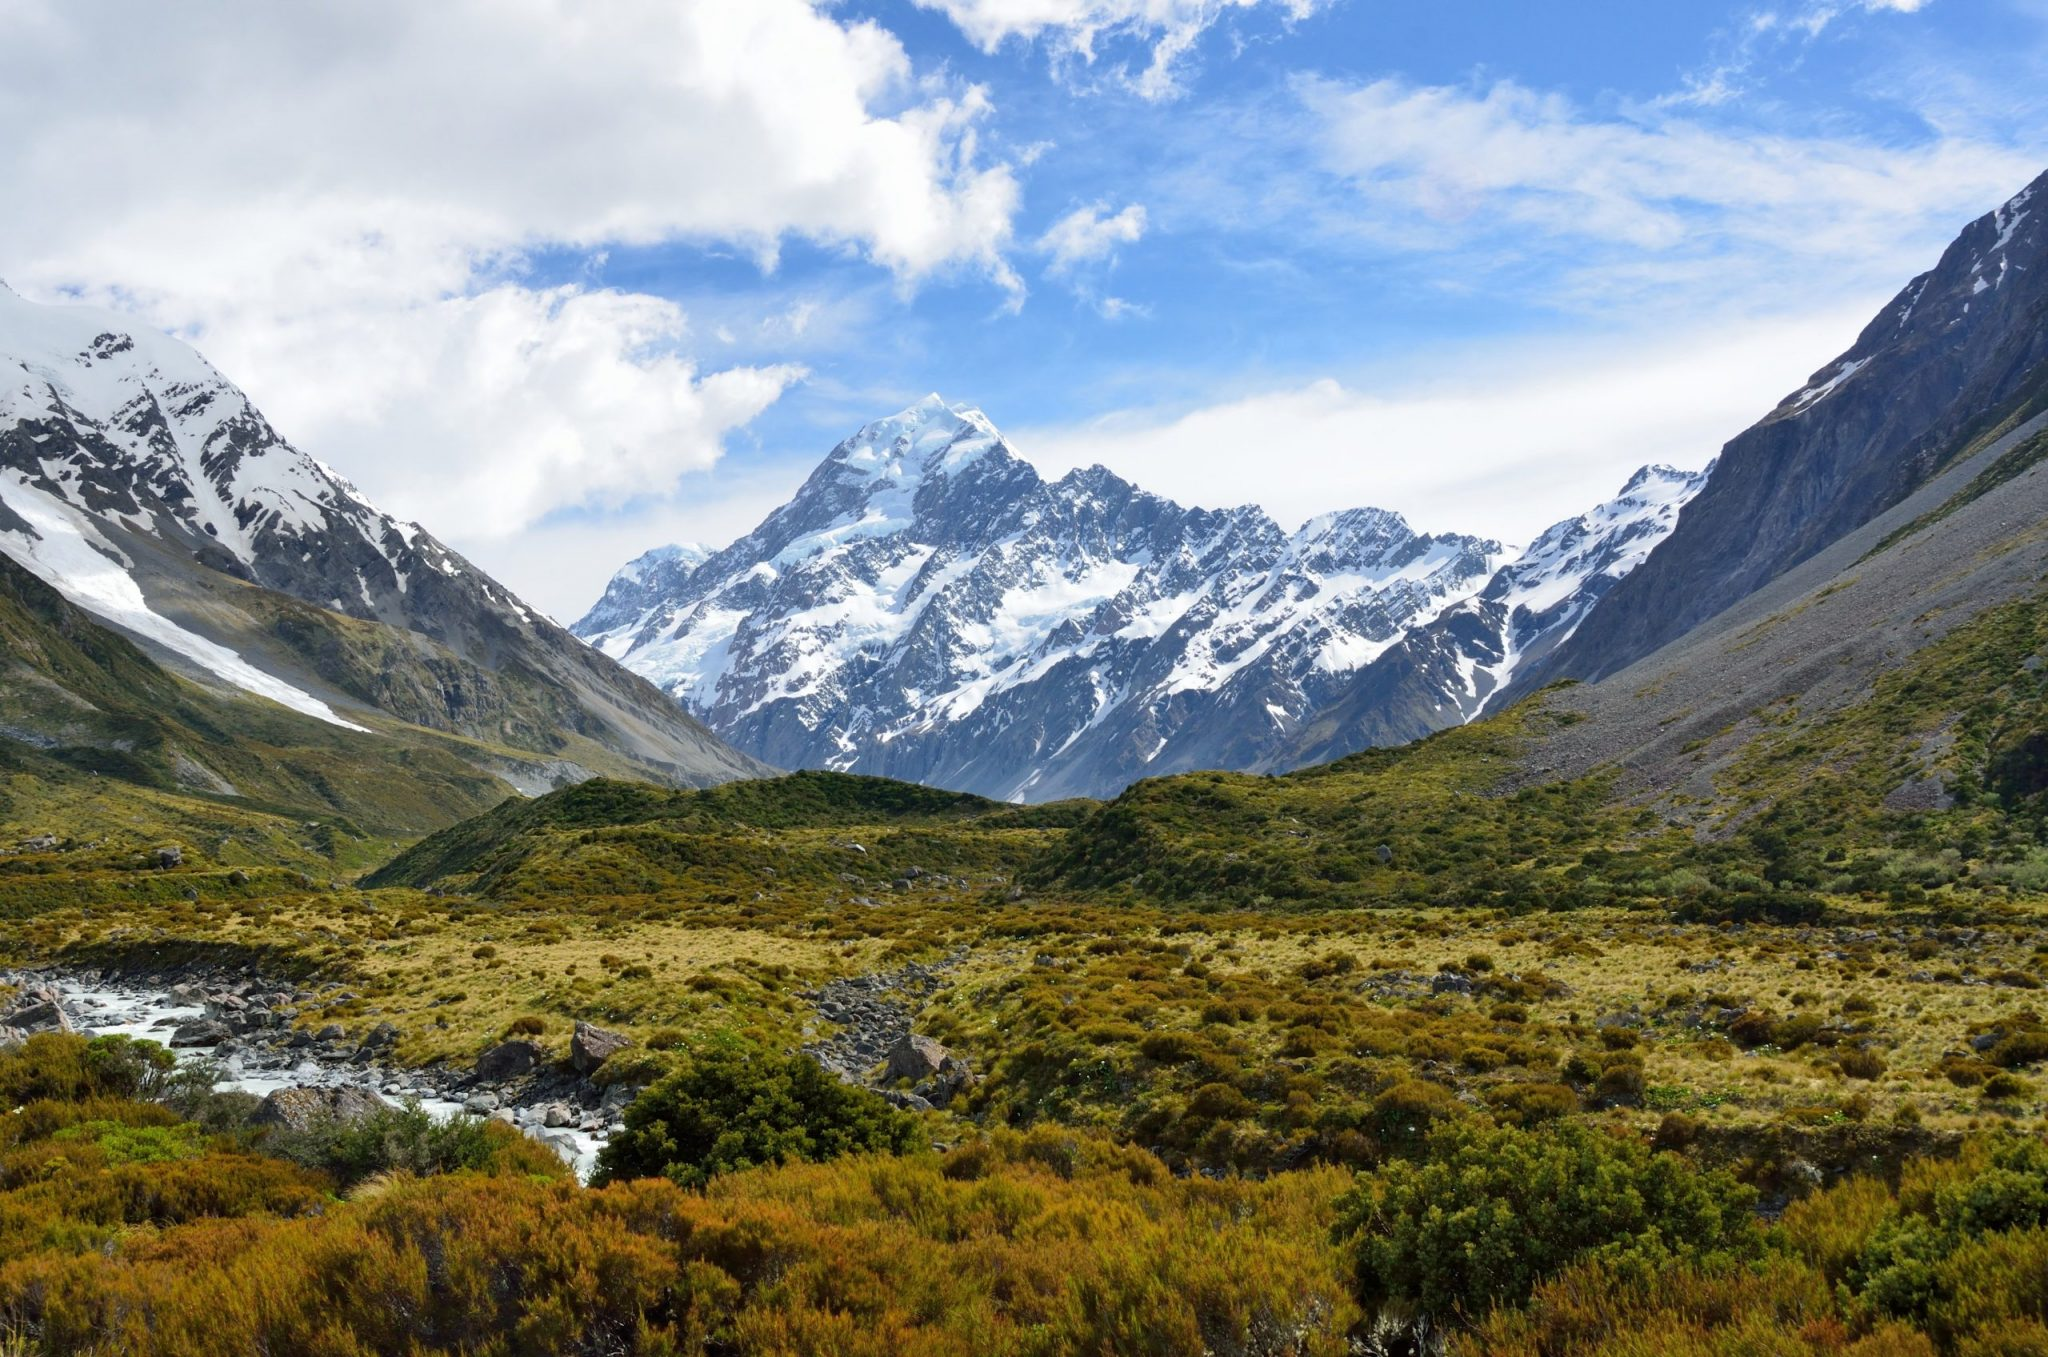 Mt. Cook NP